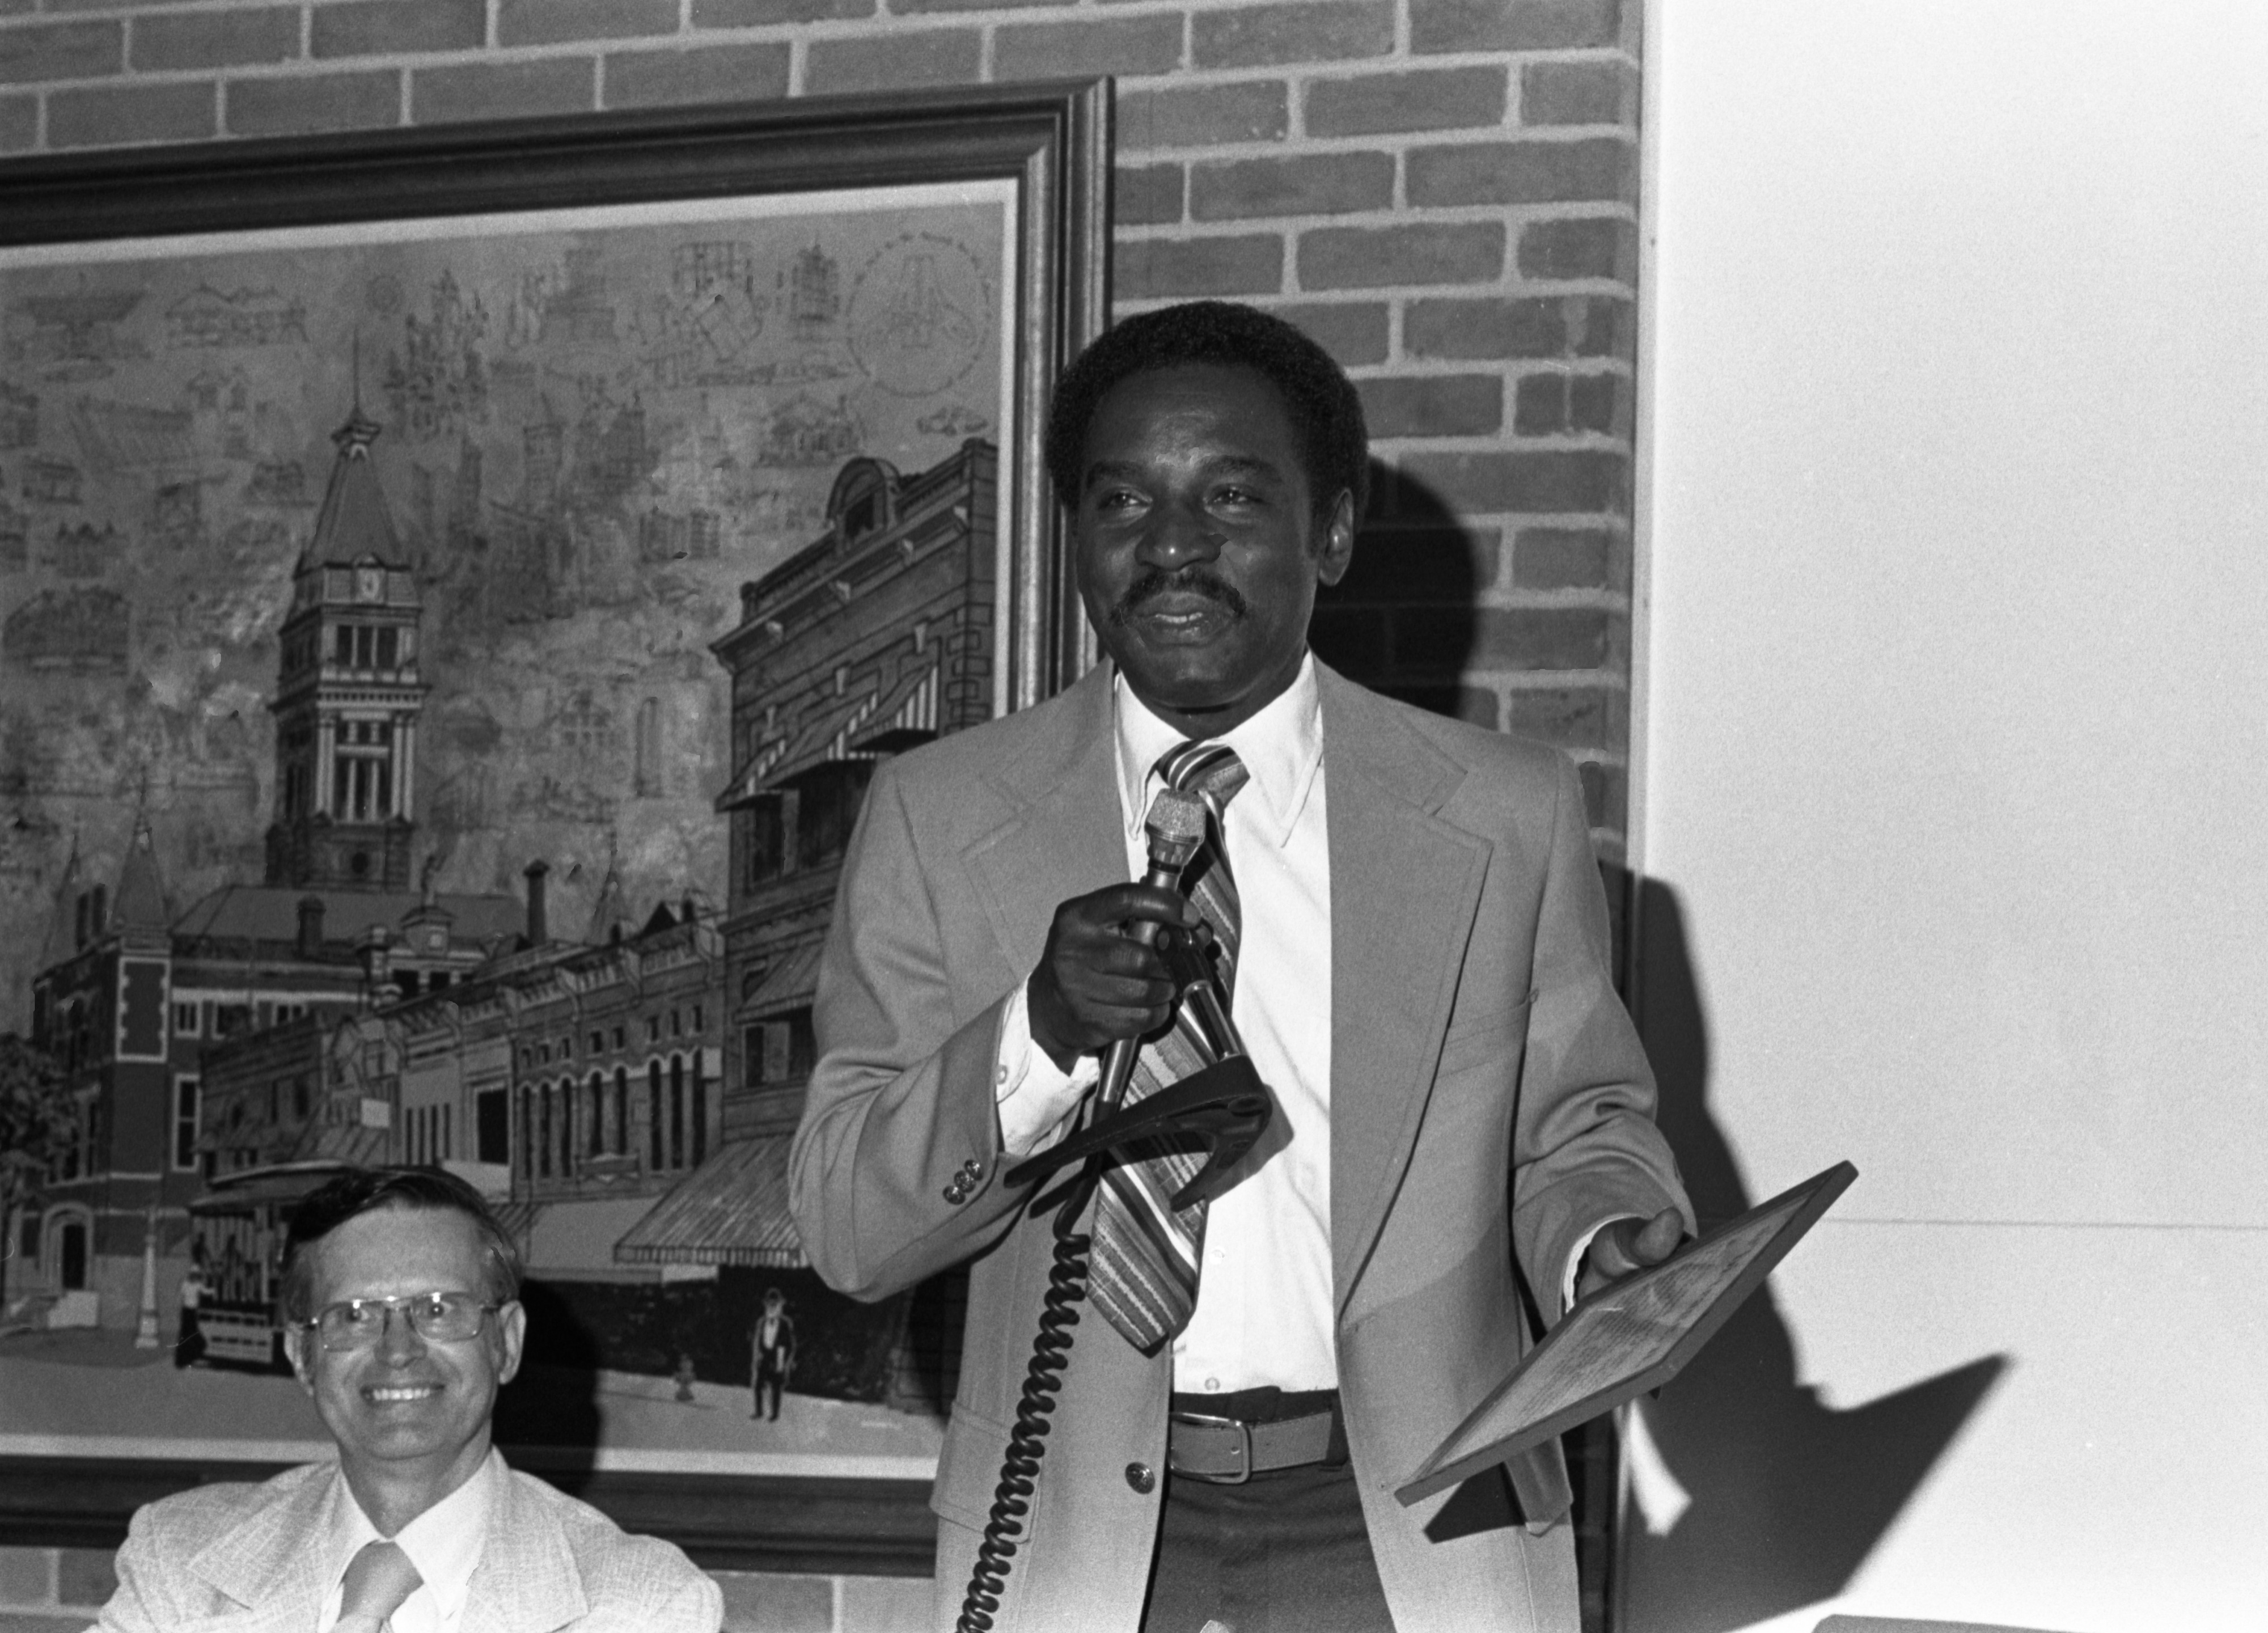 Ann Arbor Press Honor Sylvester Murray With Gifts Prior To His Last City Council Meeting, September 5, 1979 image